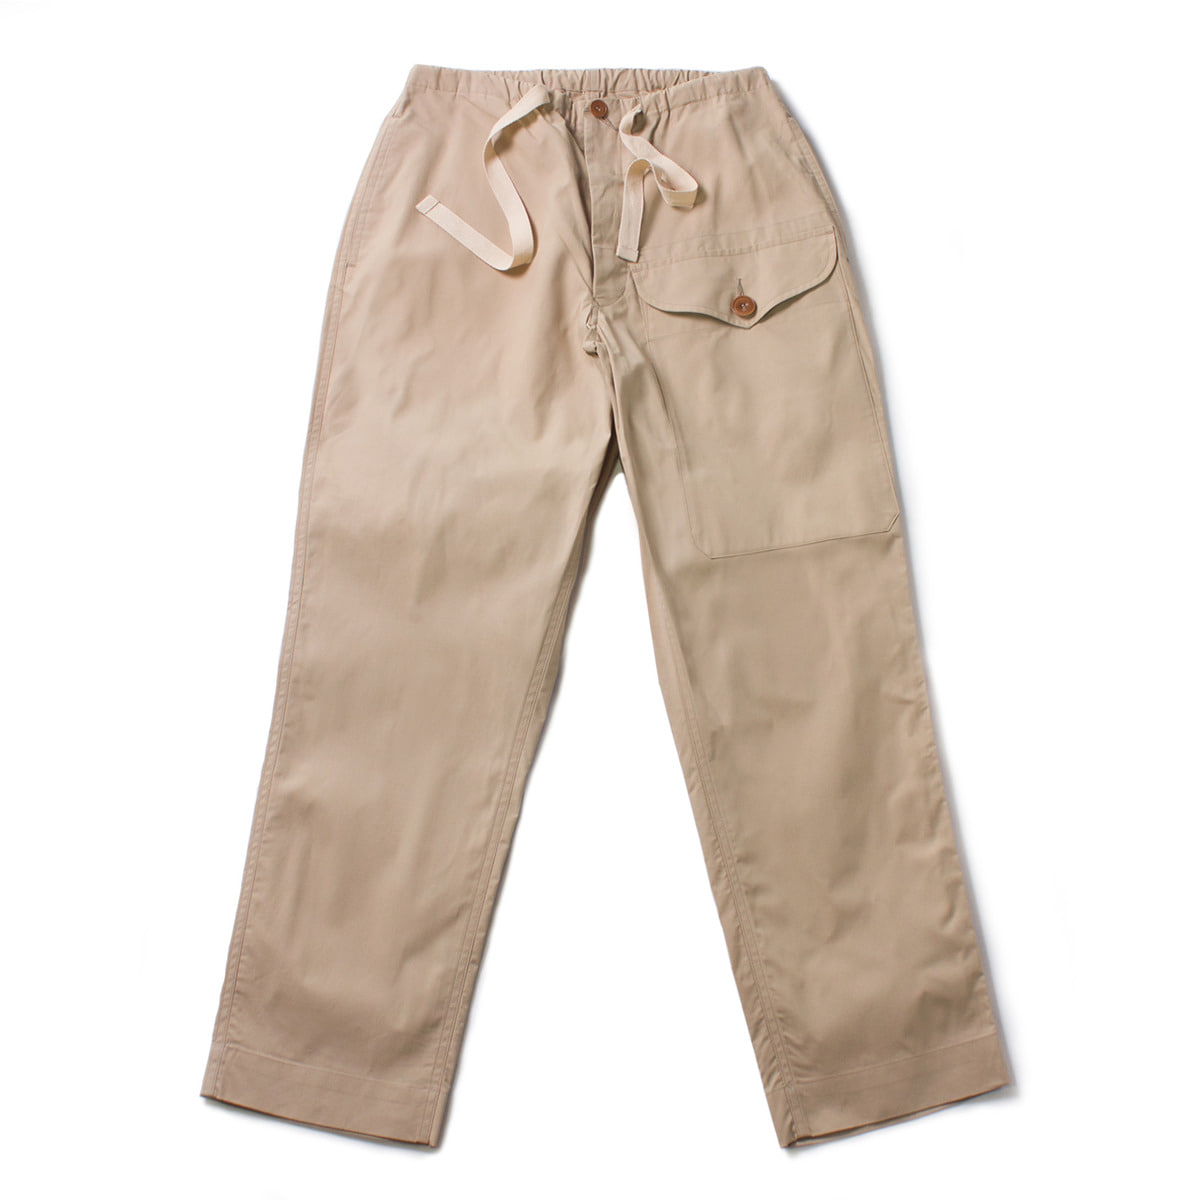 [HAVERSACK] HIGH DENSITY OXFORD PANTS 'BEIGE'